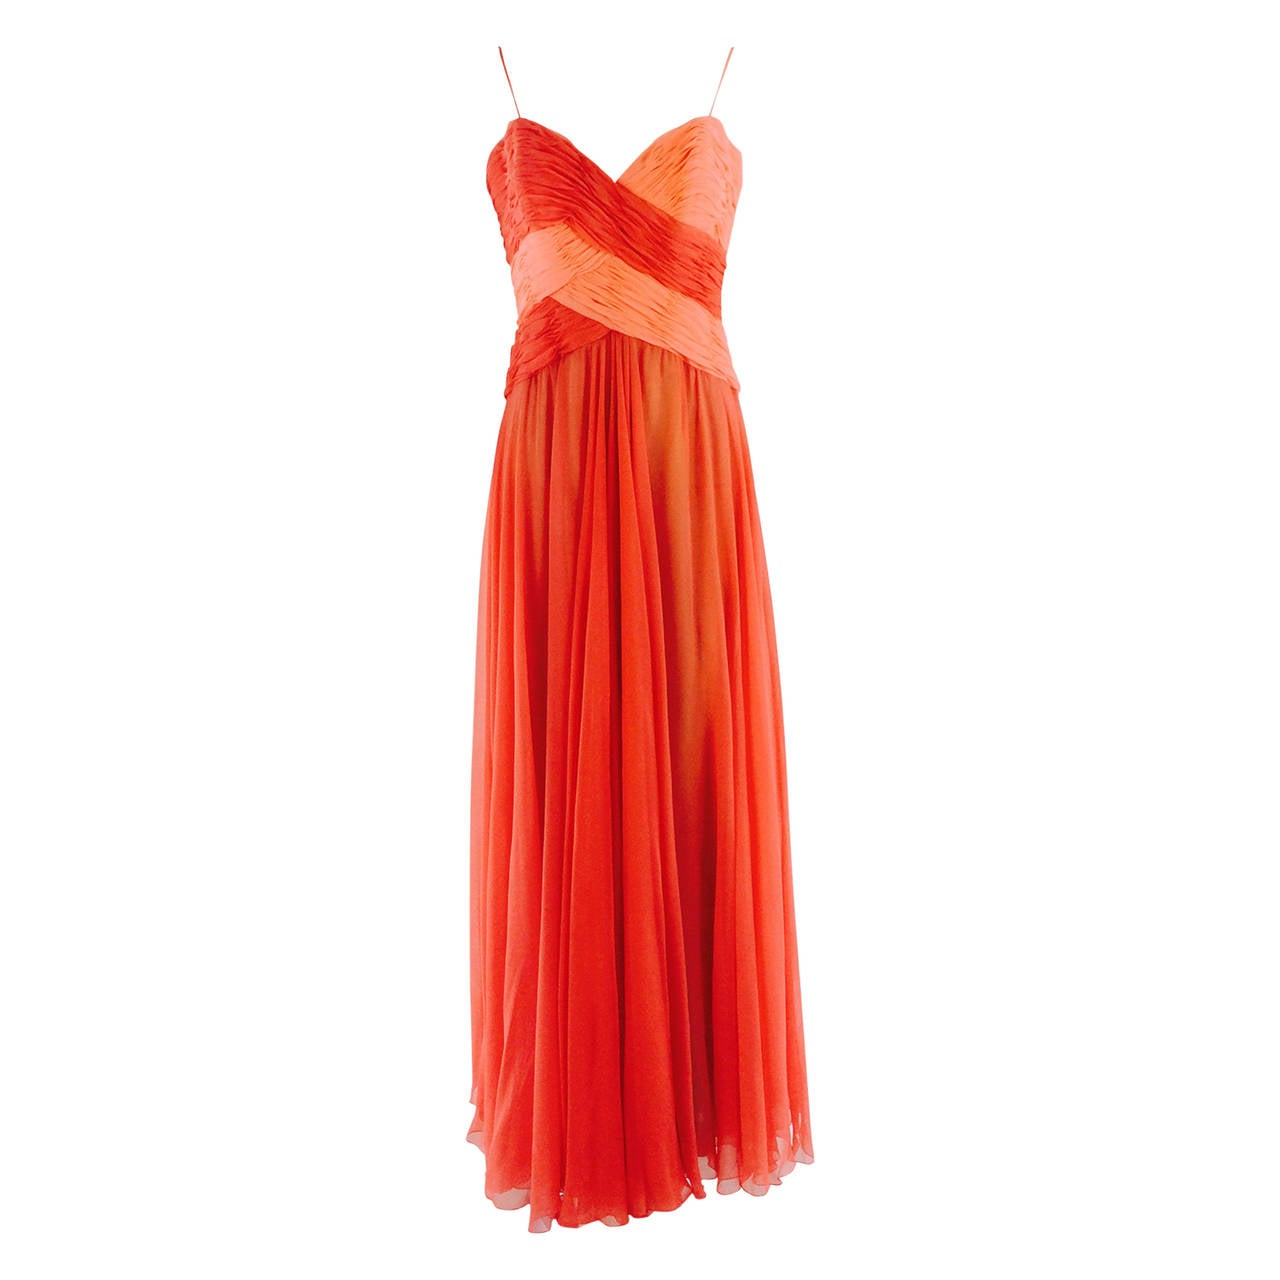 Loris Azzaro goddess gown in coral/peach silk chiffon 1970s